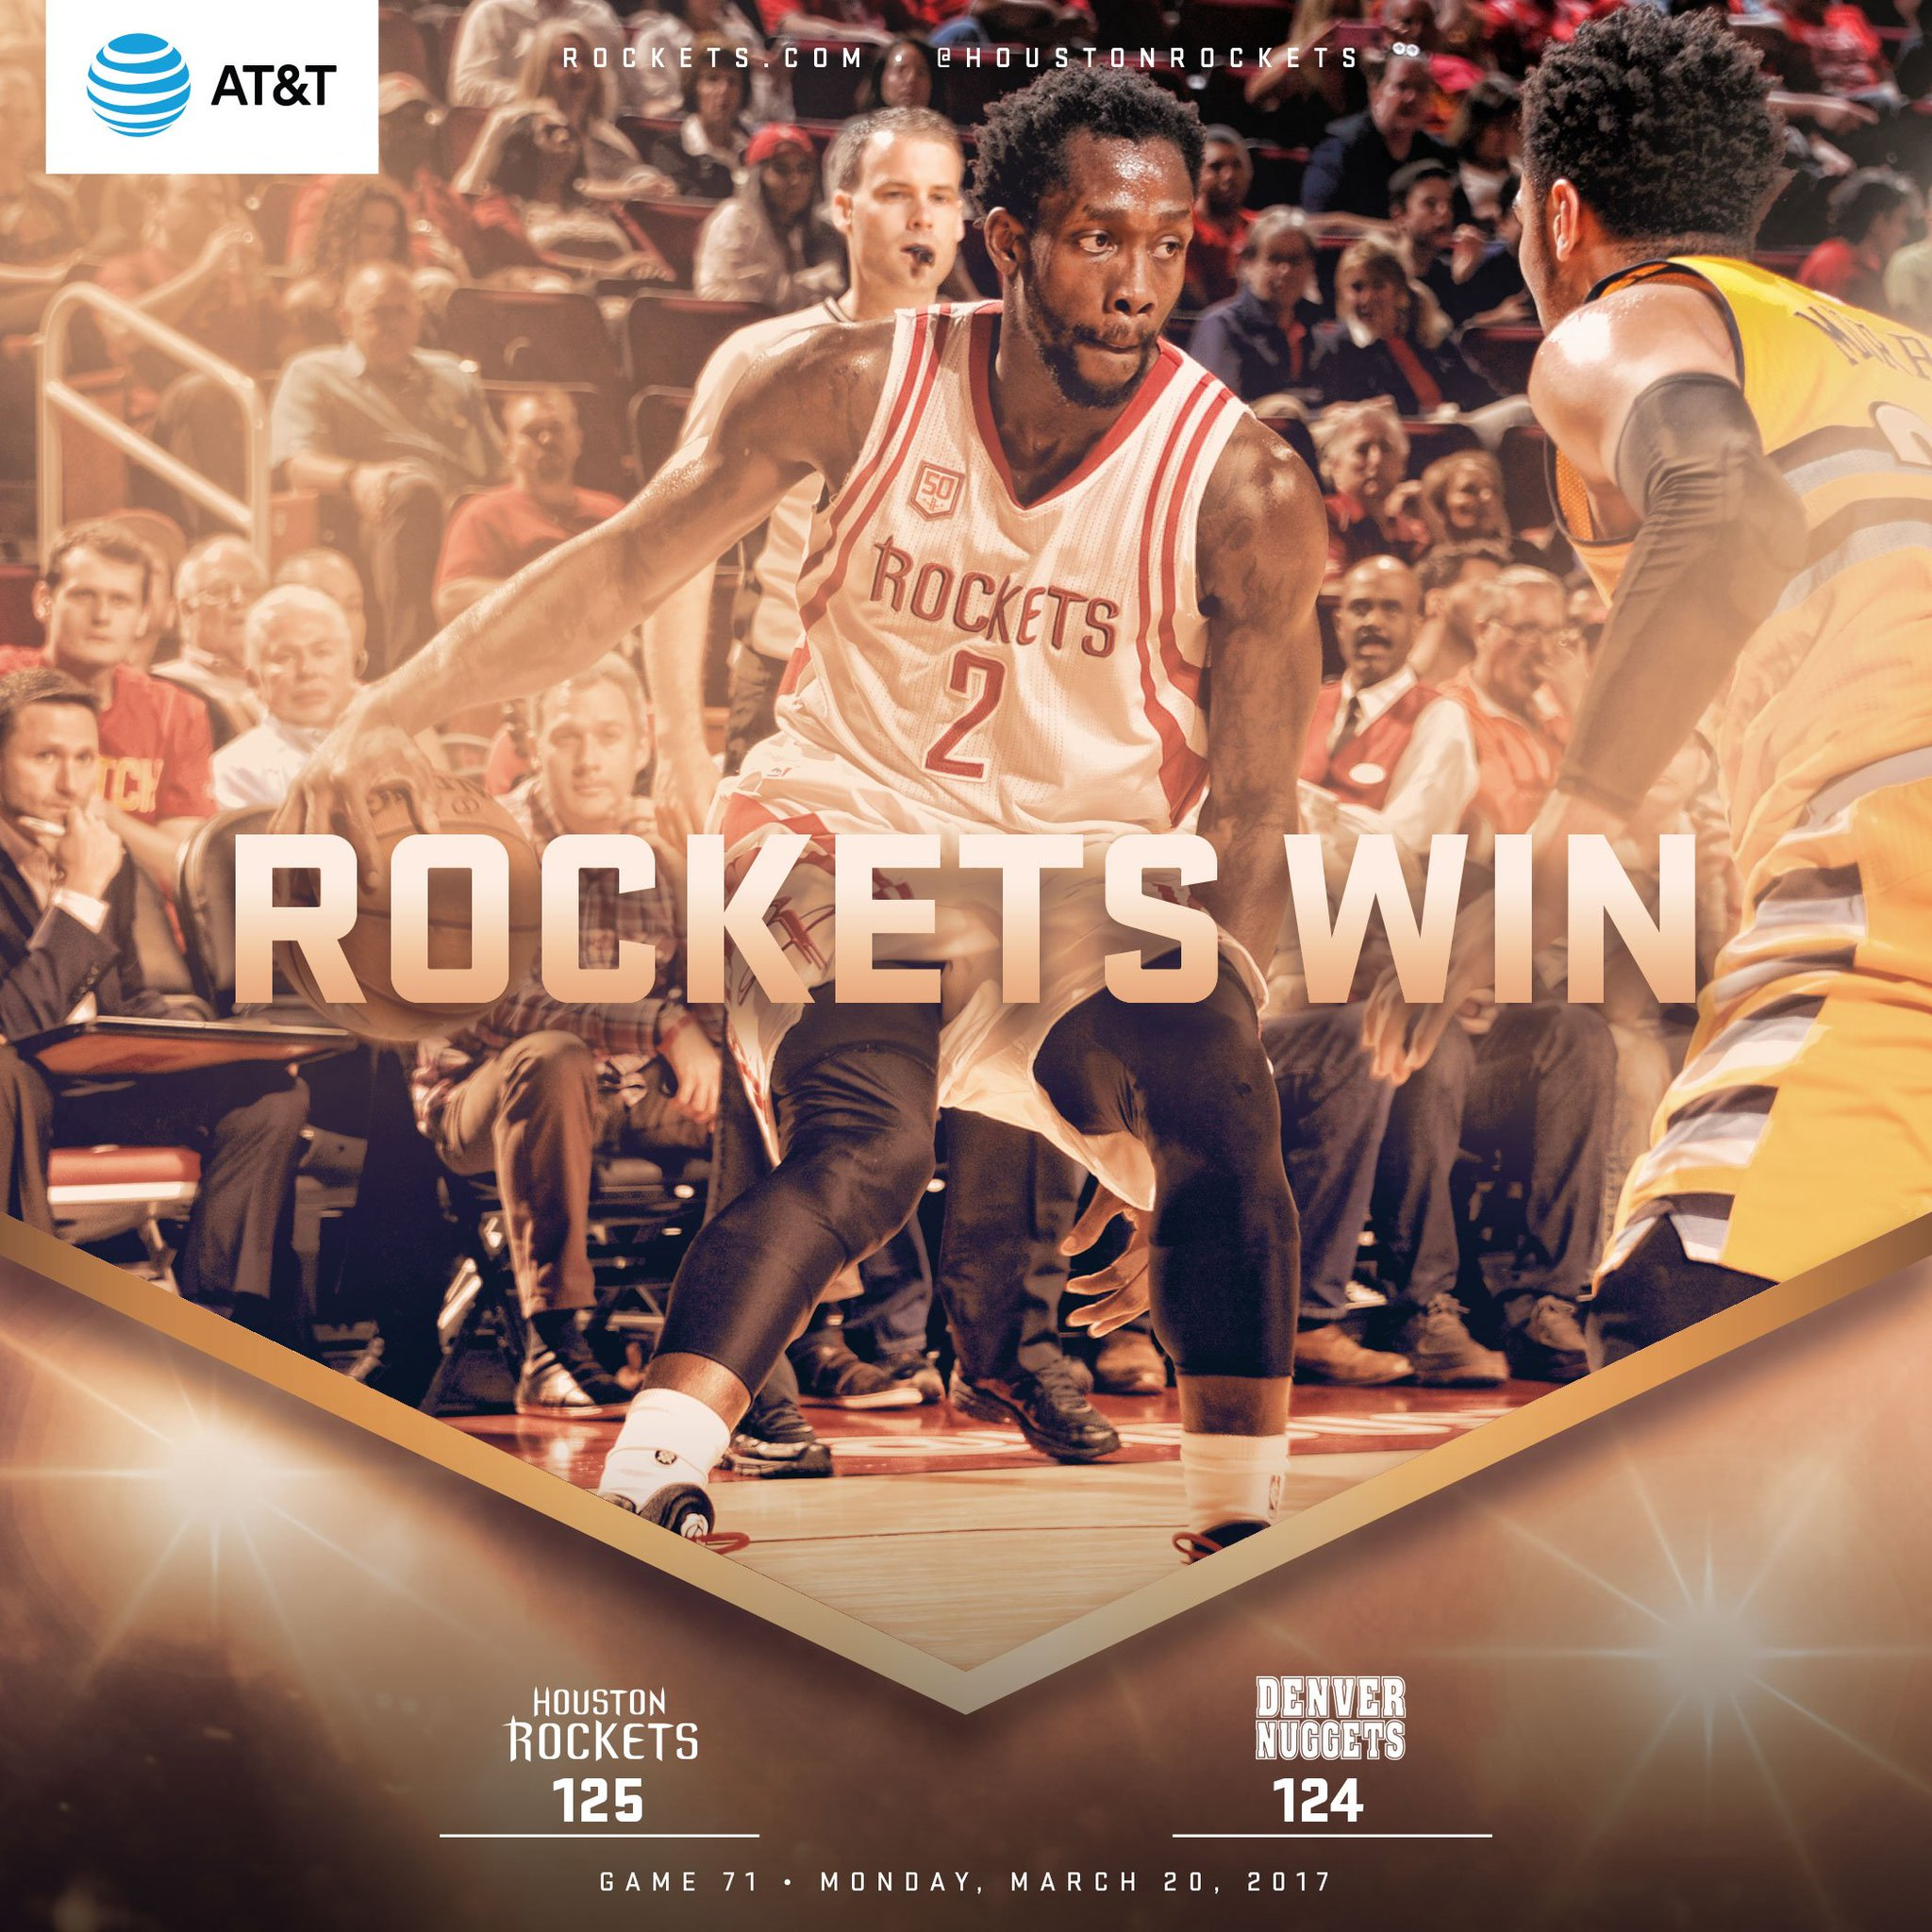 A true TEAM effort! #Rockets50 https://t.co/jIM2kjt83K